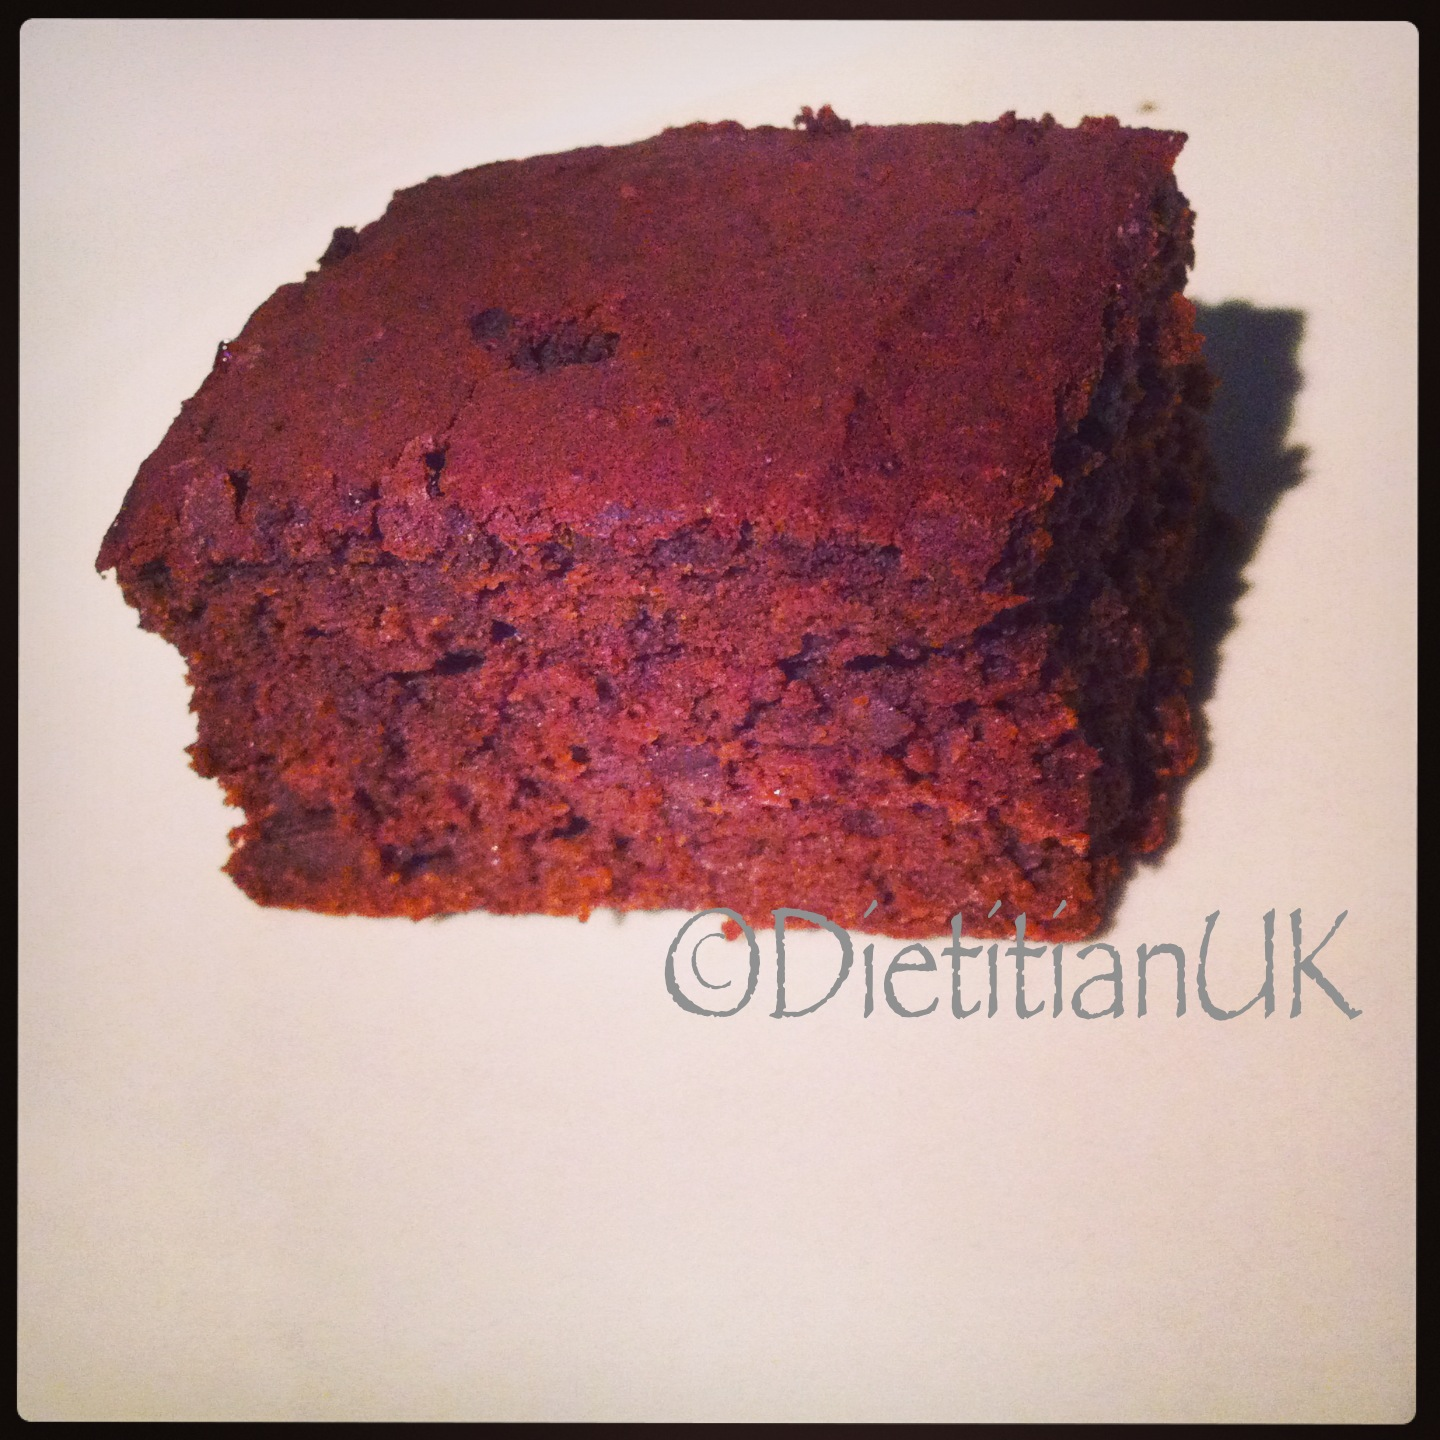 Gluten Free Healthier Chocolate and Beetroot Brownies.